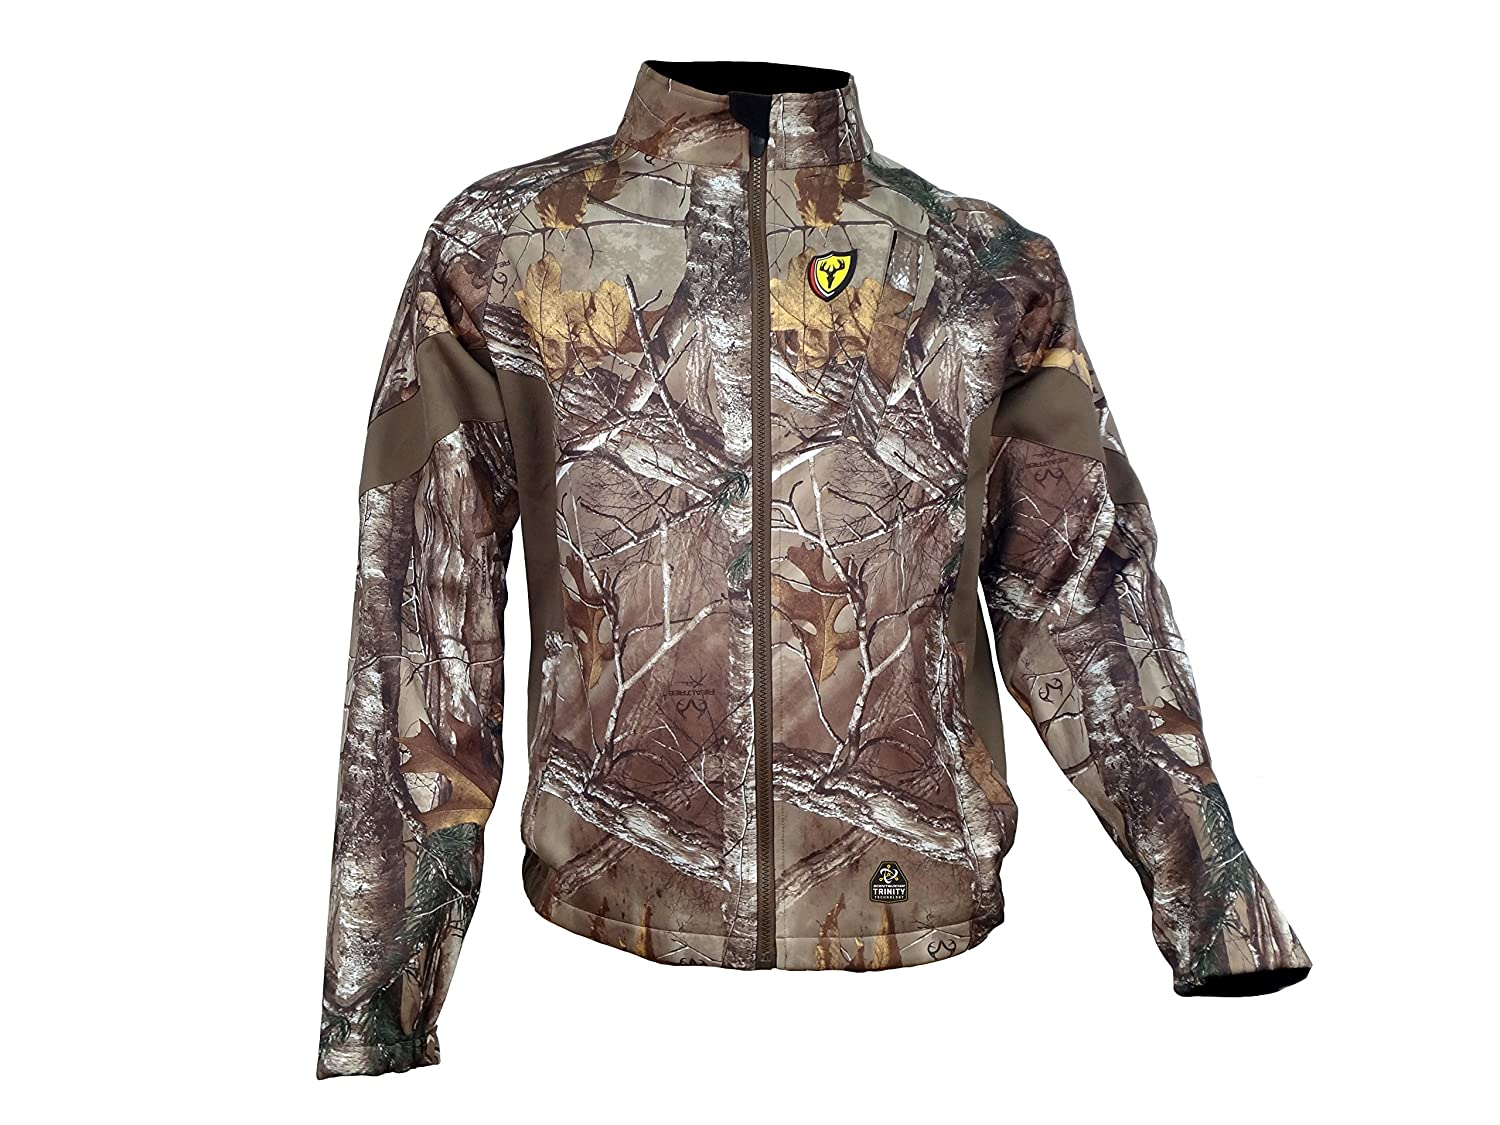 Scent Blocker Knock Out Jacket Knock Out Jacket-P